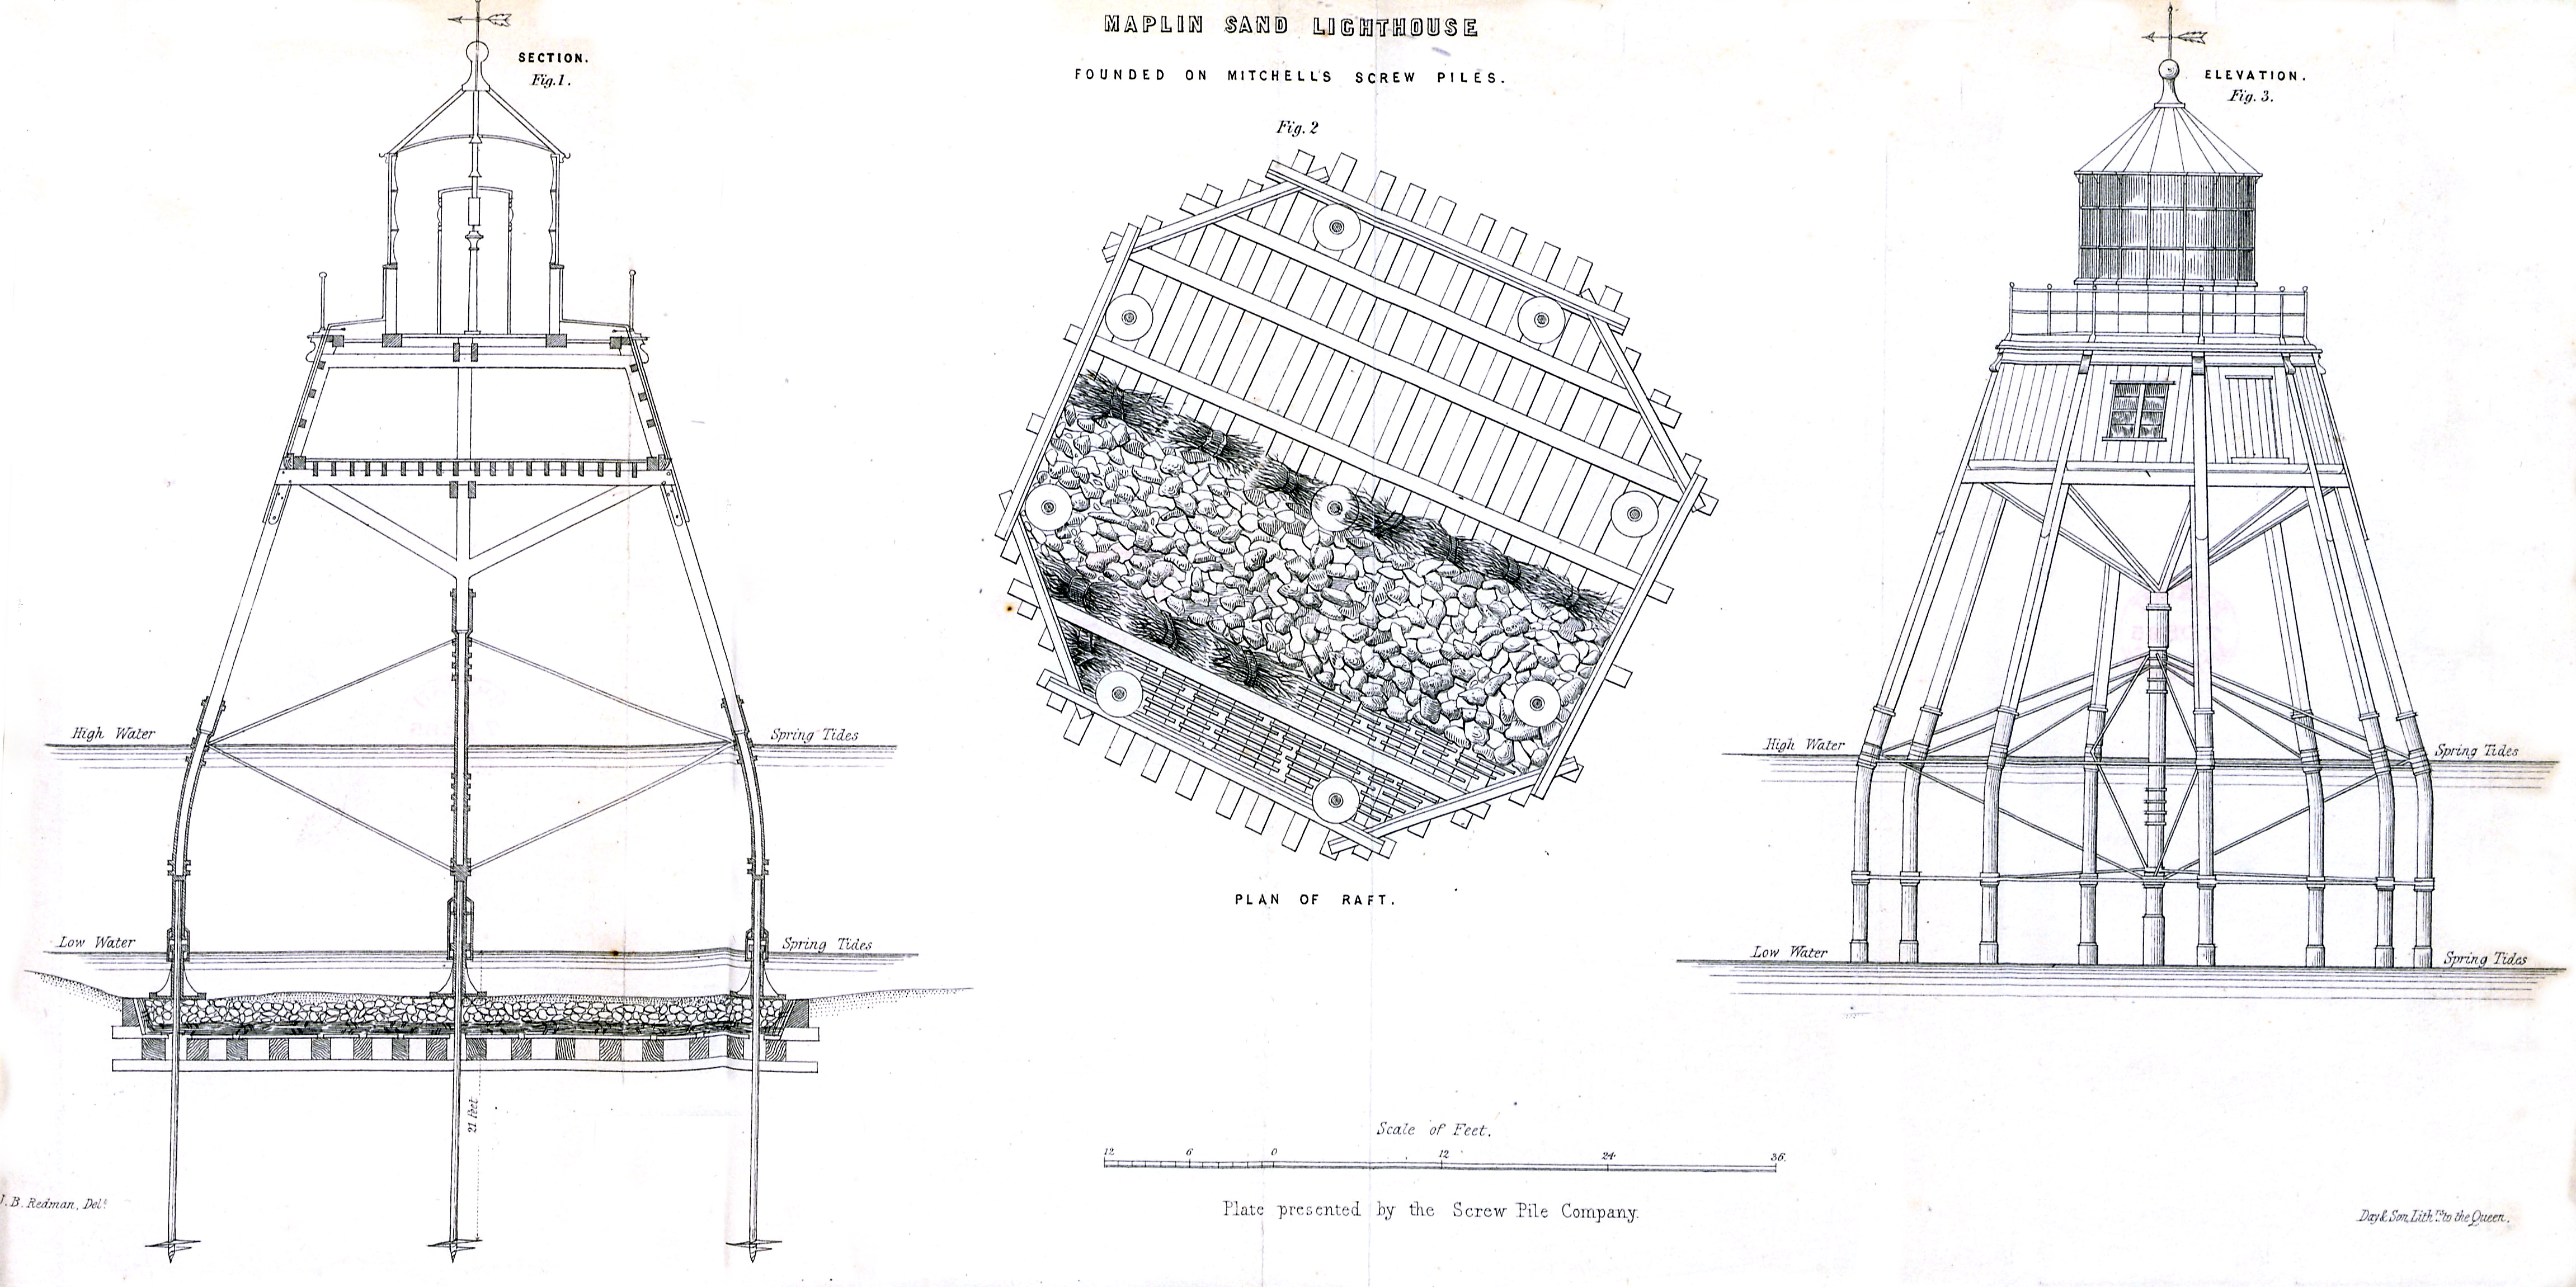 Archivo Maplin Sands Lighthouse Founded On Mitchells Screw